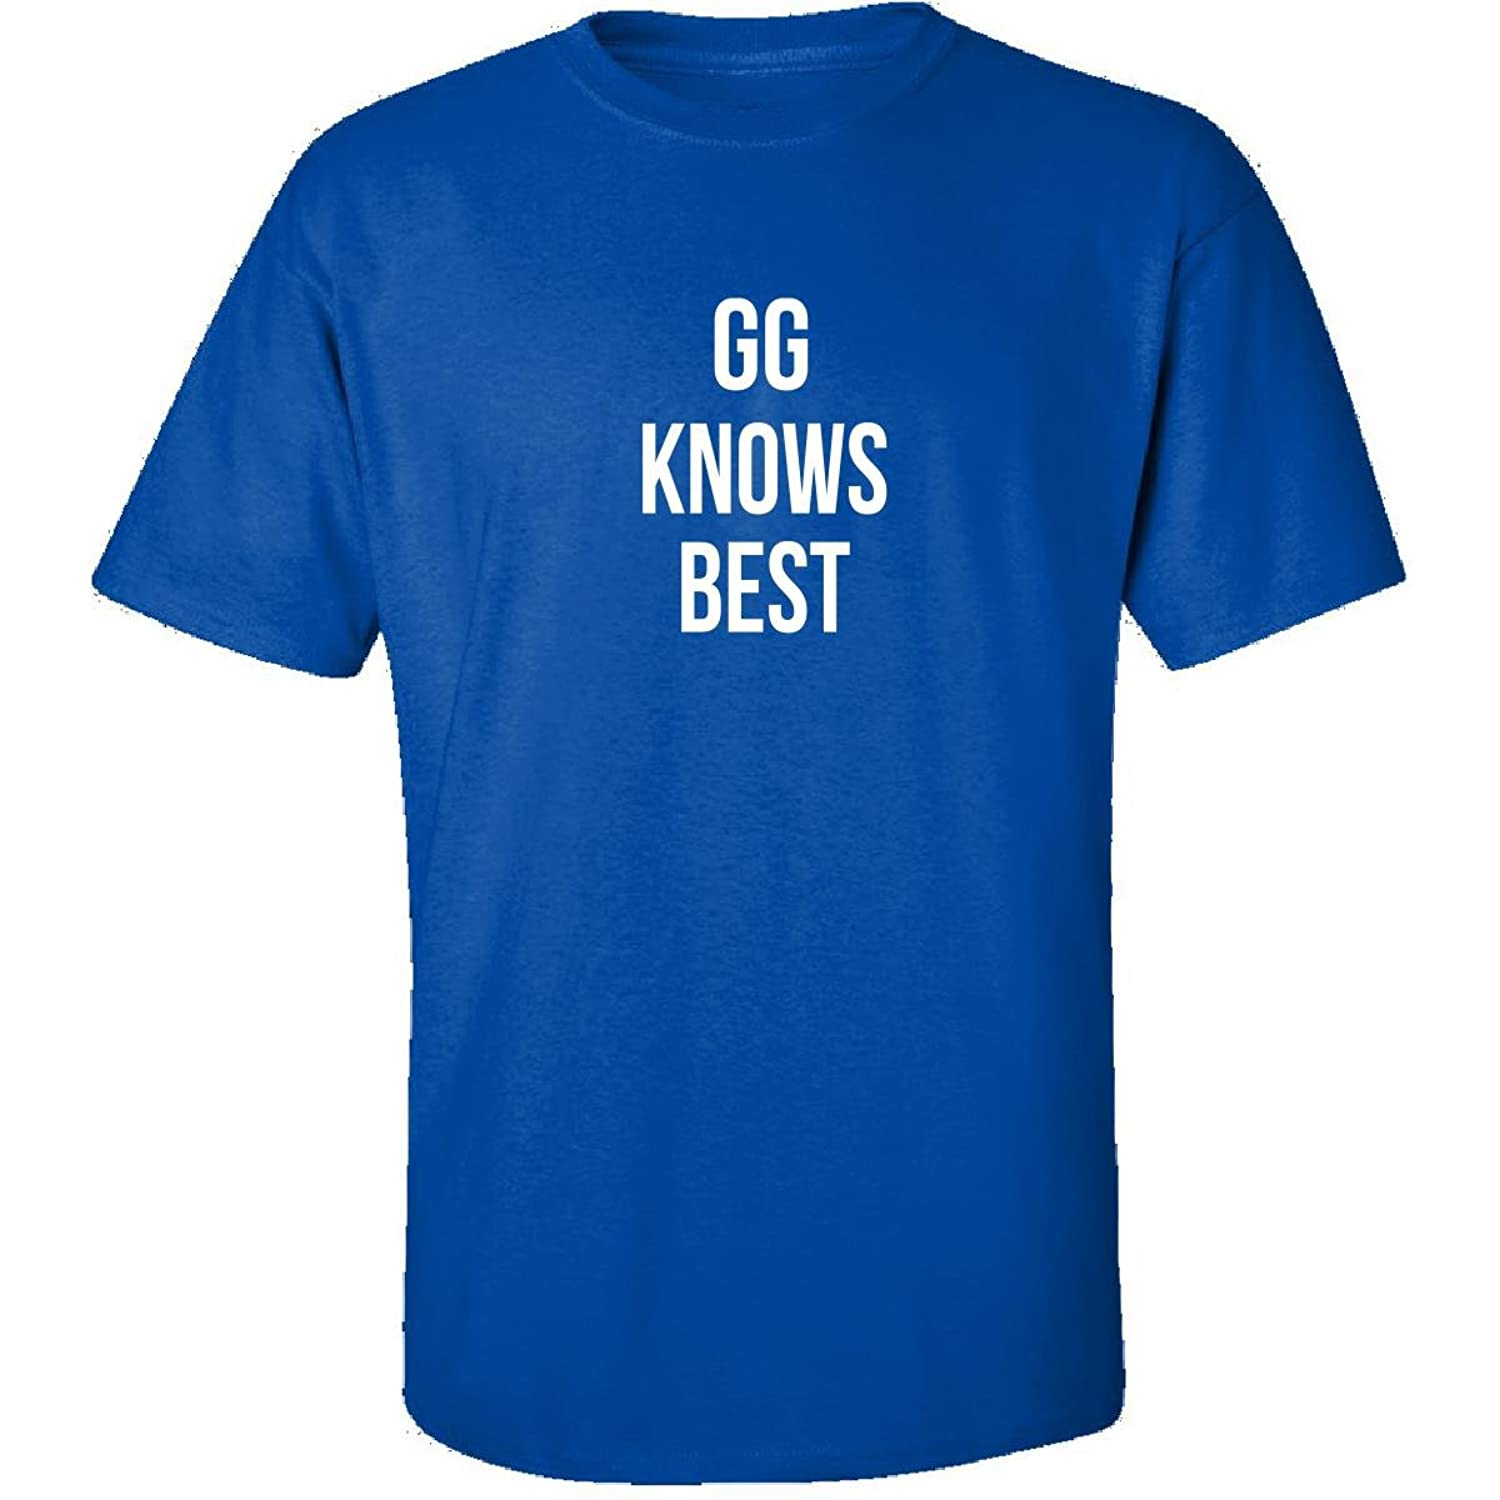 Gg Knows Best Grandma Grandpa Gift - Adult Shirt